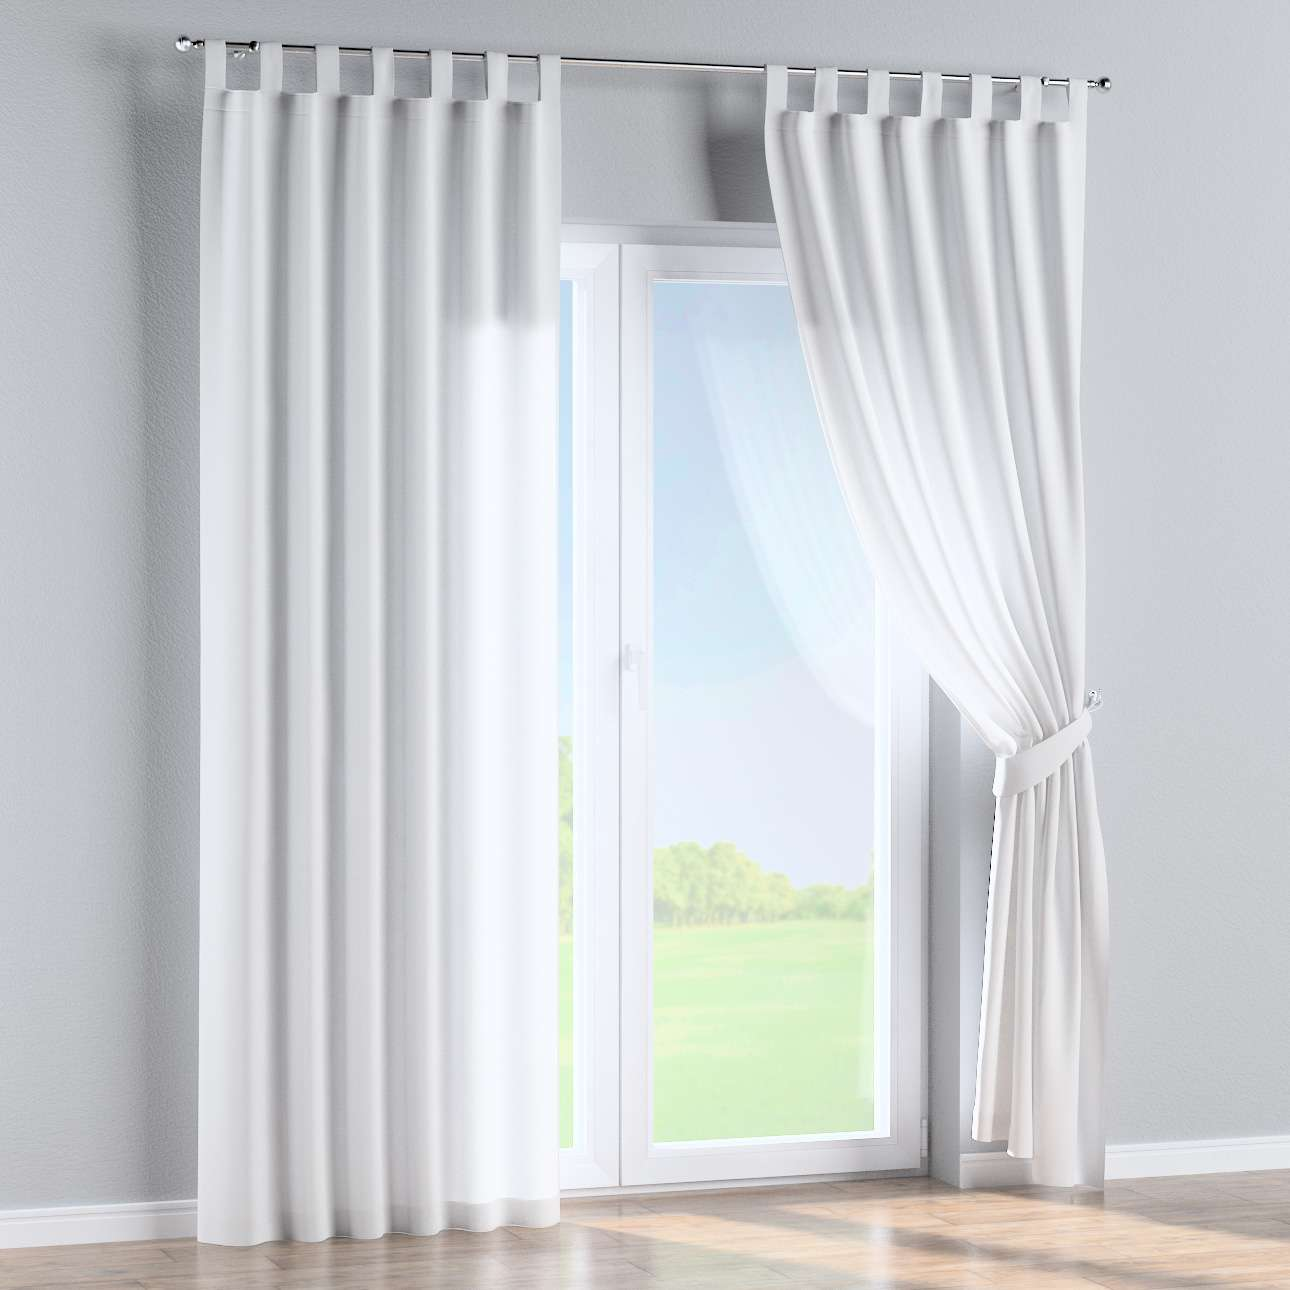 Tab top curtains 130 × 260 cm (51 × 102 inch) in collection Loneta , fabric: 133-02